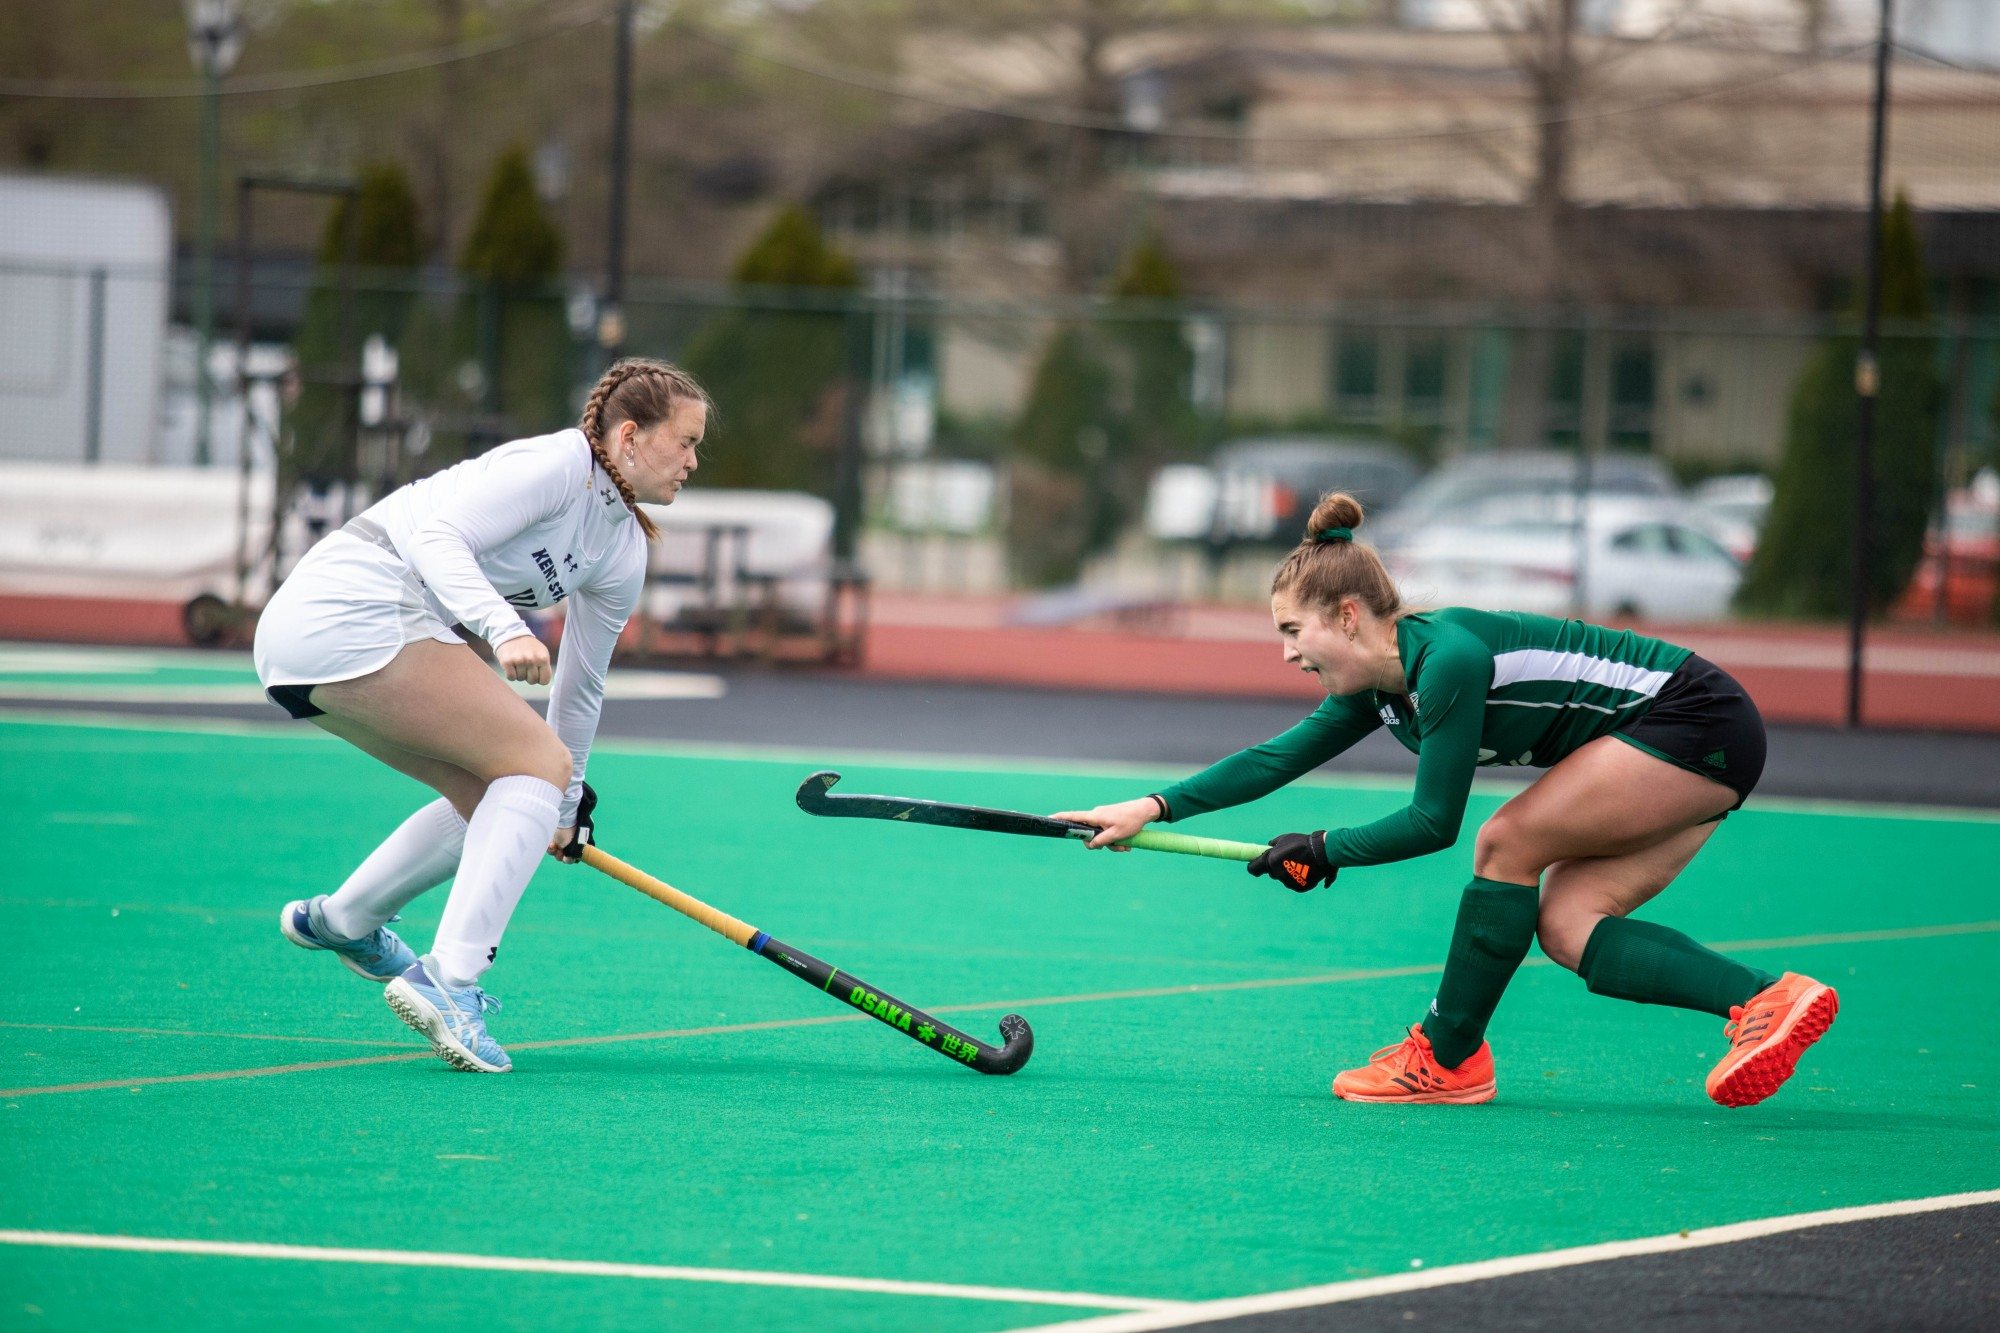 Ohio junior Courtney Klein (#15), right, hits the ball past Kent freshman Jenna McCrudden (#14), left, during the game at Pruitt Field on Friday, April 16, 2021.